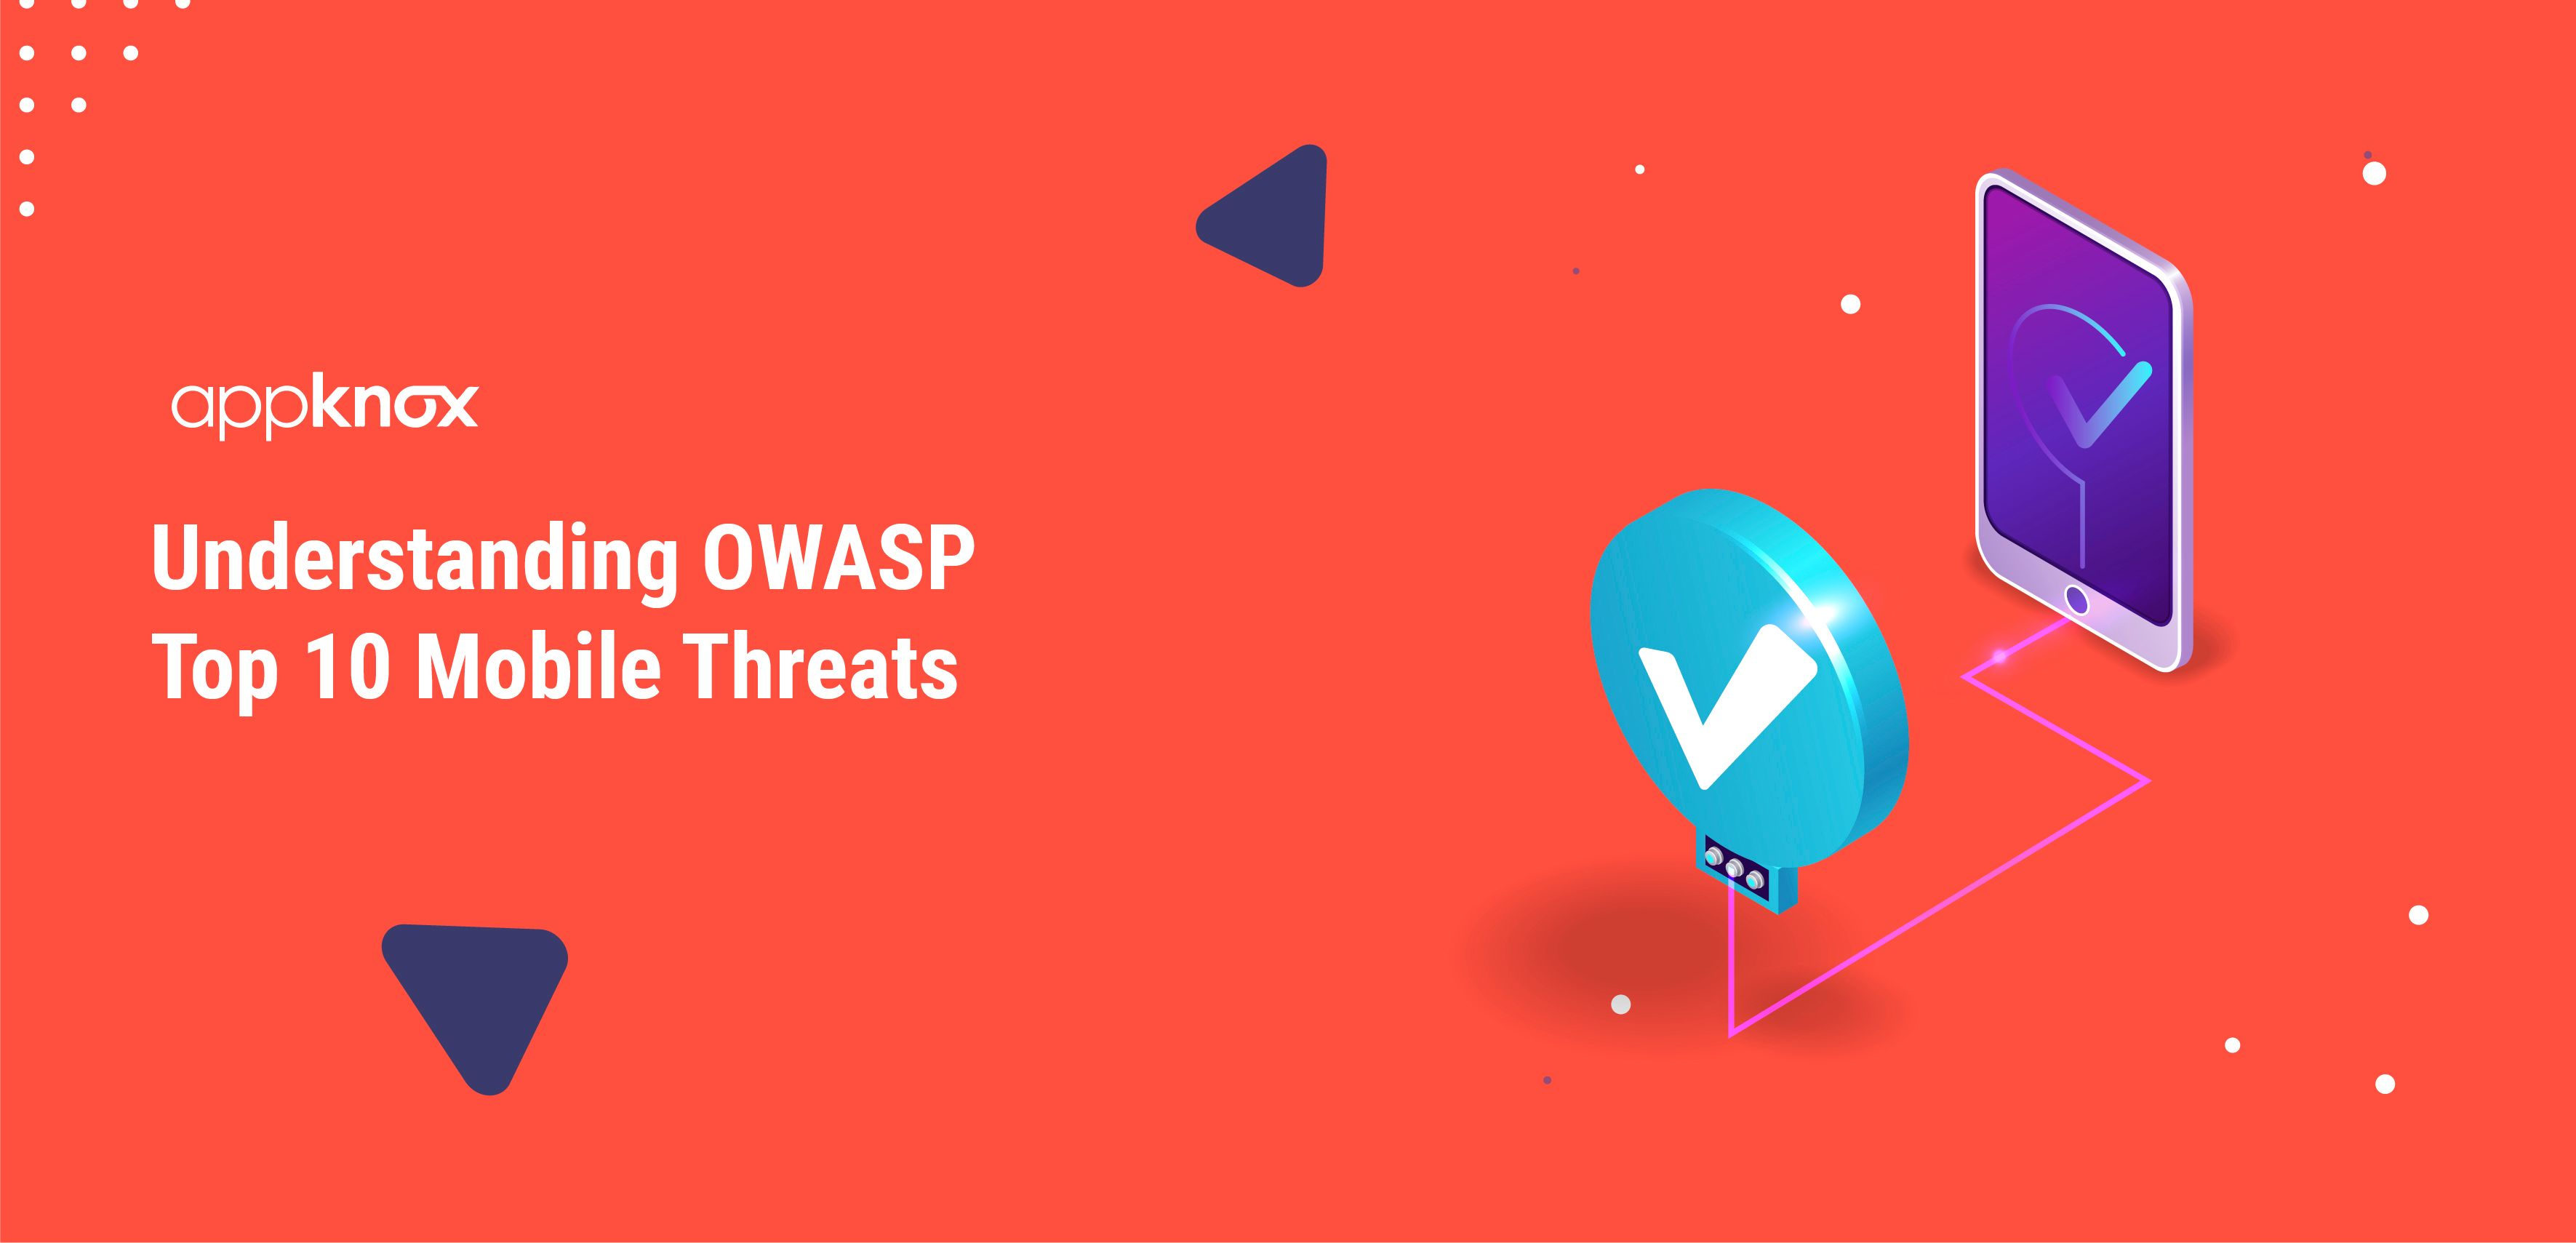 Understanding OWASP Top 10 Mobile Threats